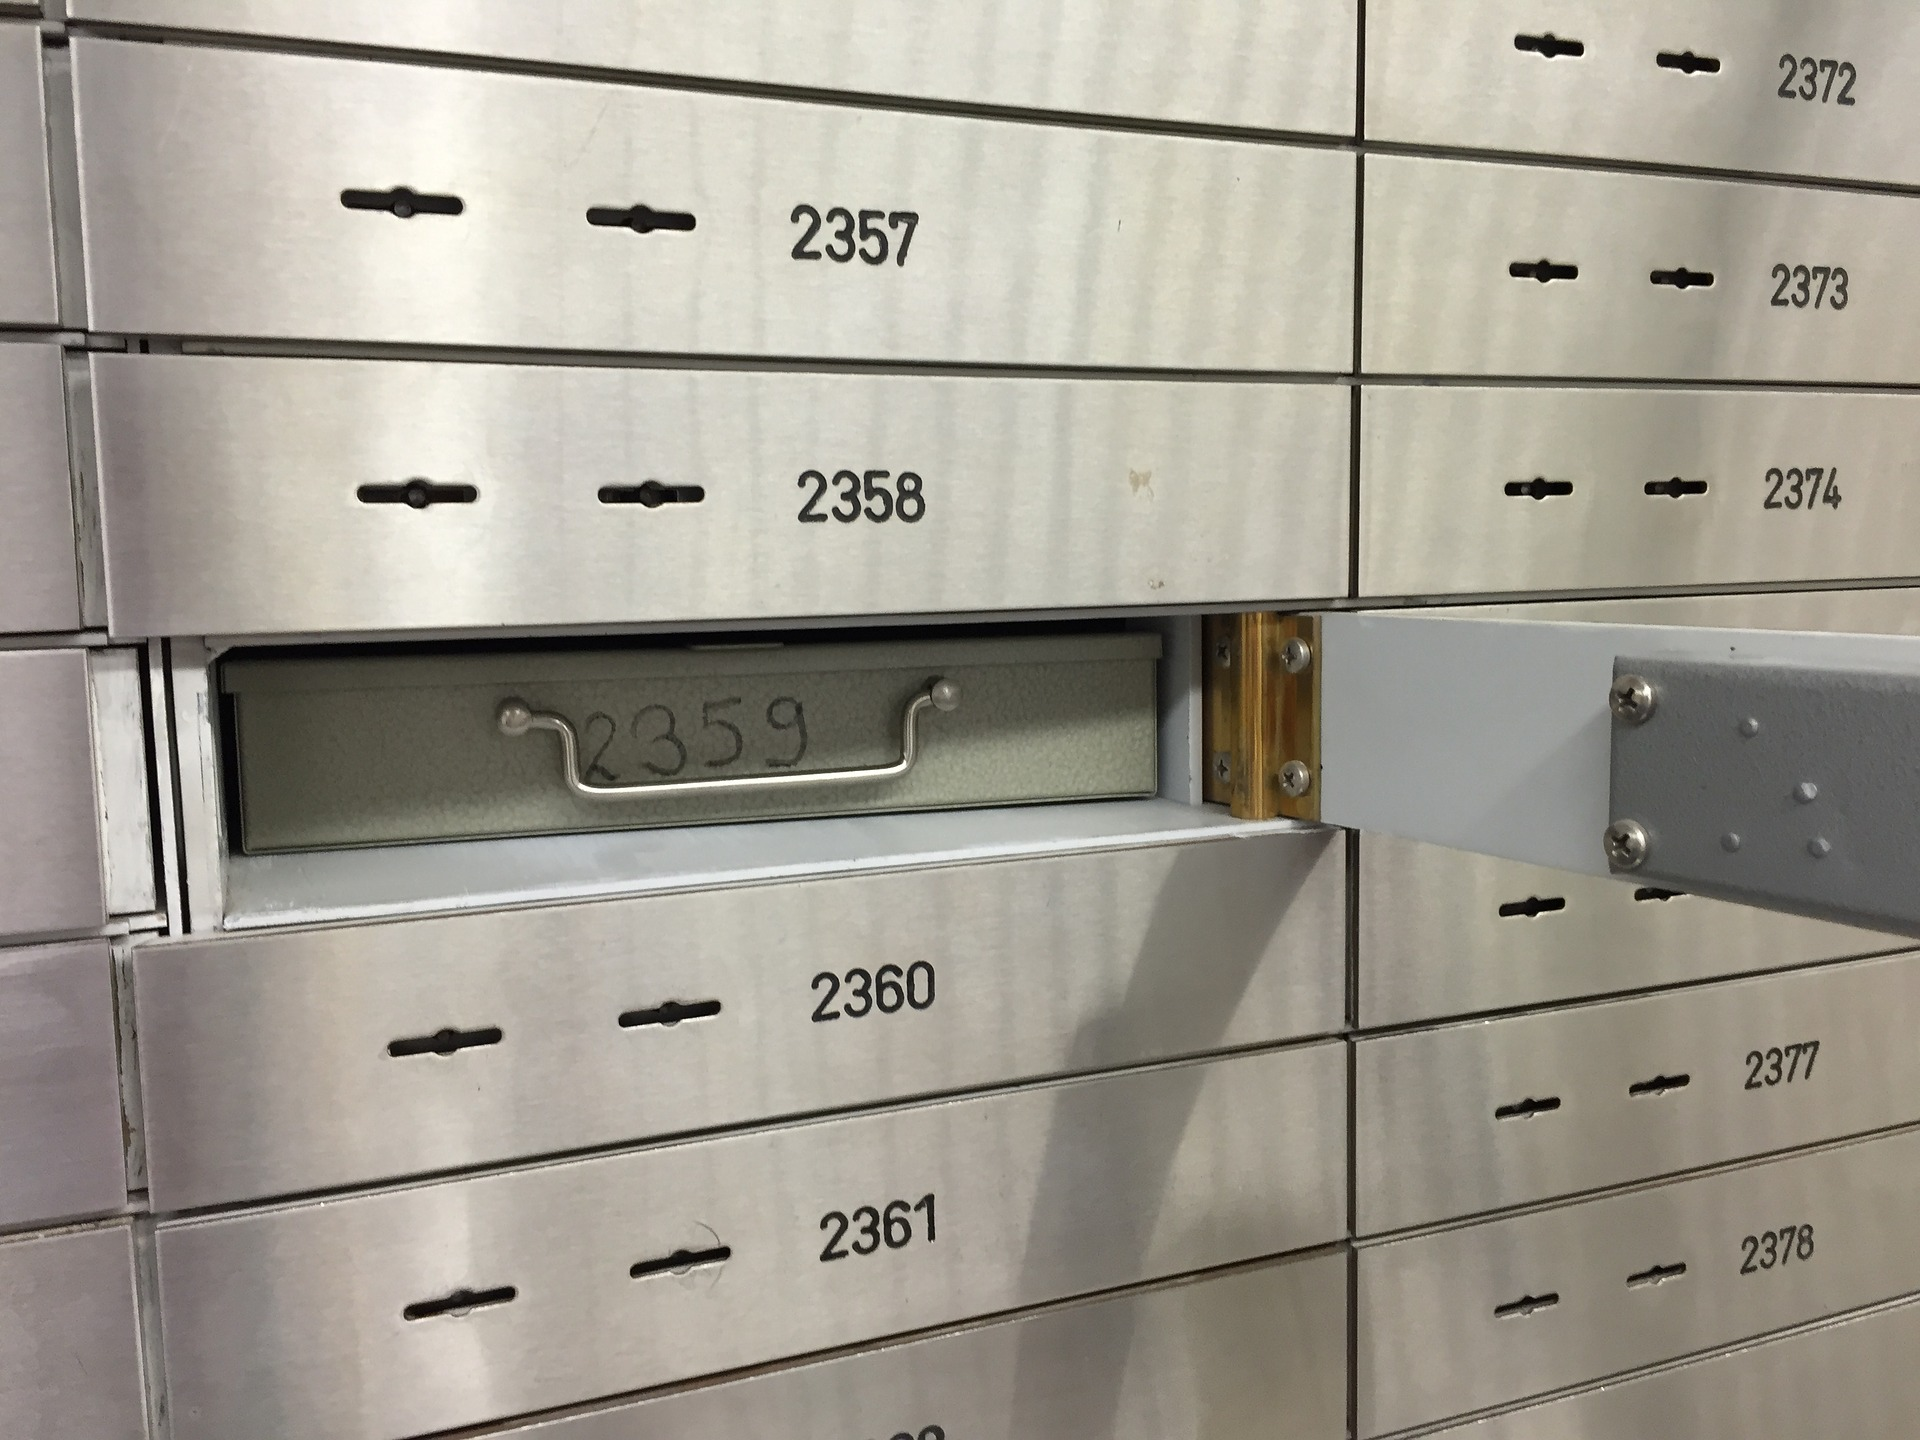 FNB heists call bank safety deposit box services into question